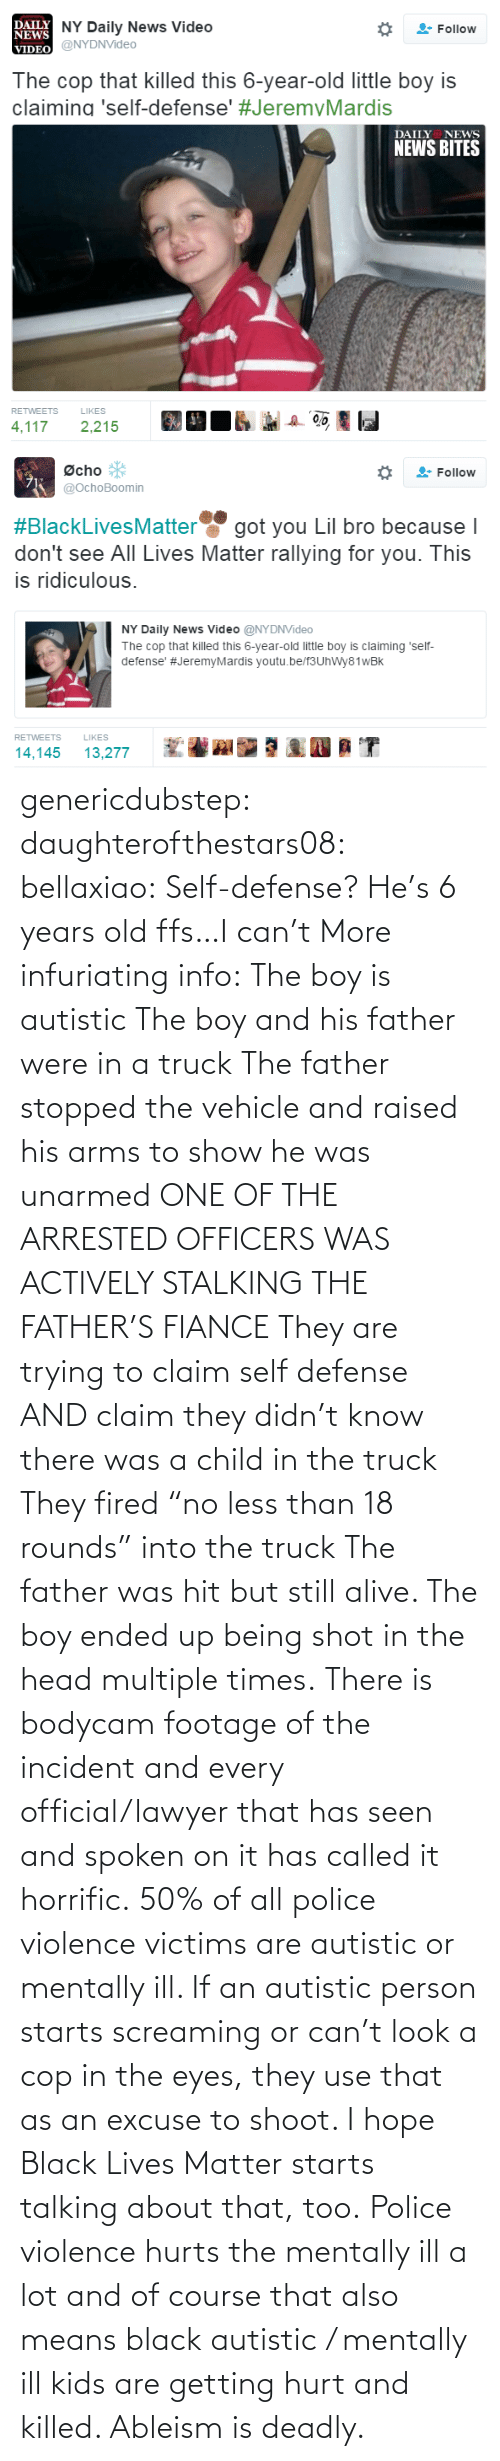 "head: genericdubstep: daughterofthestars08:  bellaxiao:  Self-defense? He's 6 years old ffs…I can't  More infuriating info: The boy is autistic The boy and his father were in a truck The father stopped the vehicle and raised his arms to show he was unarmed ONE OF THE ARRESTED OFFICERS WAS ACTIVELY STALKING THE FATHER'S FIANCE They are trying to claim self defense AND claim they didn't know there was a child in the truck They fired ""no less than 18 rounds"" into the truck The father was hit but still alive. The boy ended up being shot in the head multiple times. There is bodycam footage of the incident and every official/lawyer that has seen and spoken on it has called it horrific.  50% of all police violence victims are autistic or mentally ill. If an autistic person starts screaming or can't look a cop in the eyes, they use that as an excuse to shoot. I hope Black Lives Matter starts talking about that, too. Police violence hurts the mentally ill a lot and of course that also means black autistic / mentally ill kids are getting hurt and killed. Ableism is deadly."